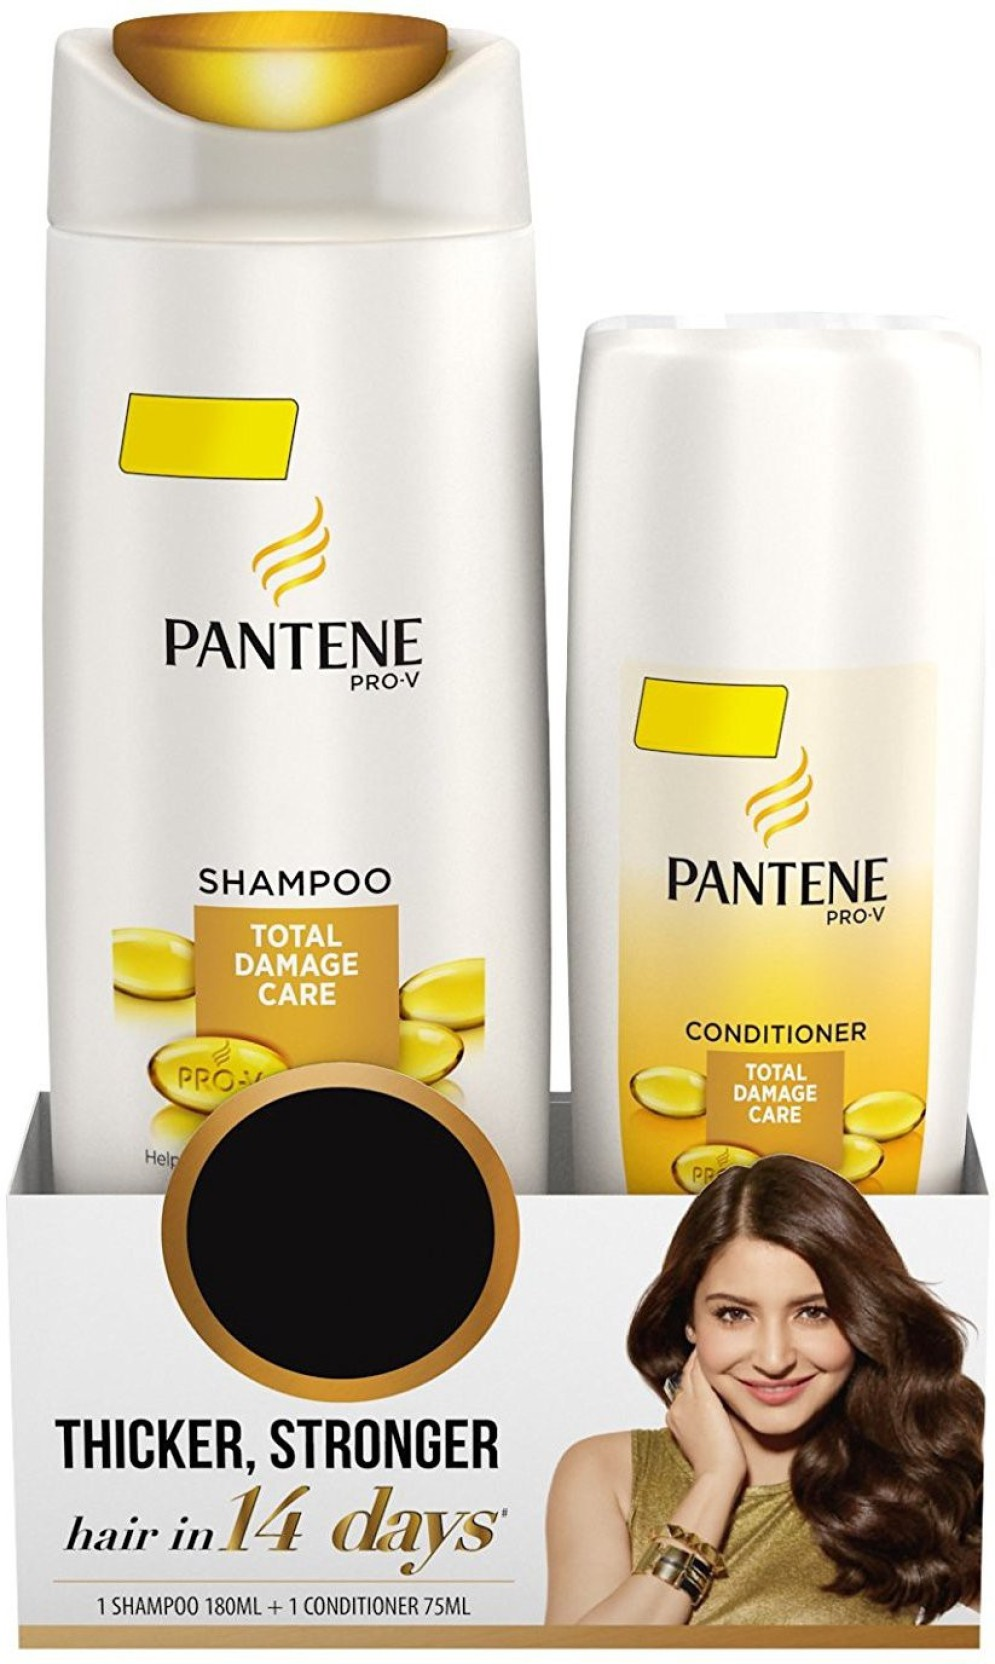 Limited Line Promo Pantene Shampoo 340ml Total Damage Care Free Source · Pantene Total Damage Care Shampoo 180ml With Conditioner 70 Ml 75ml Home